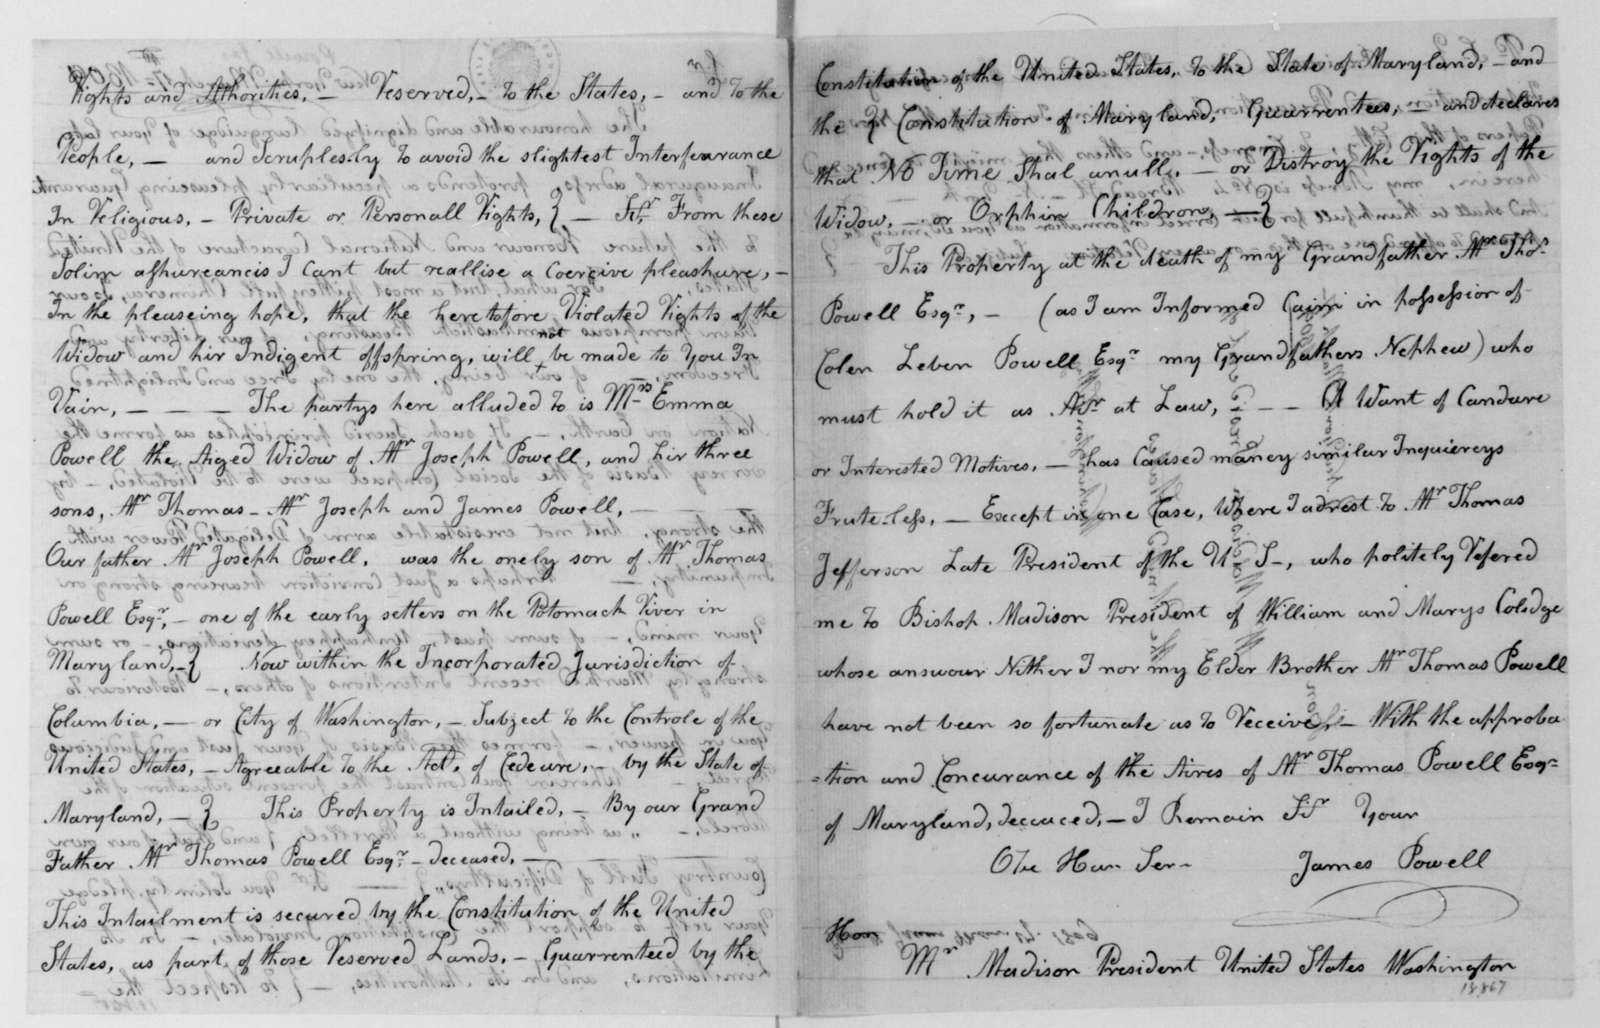 James Powell to James Madison, March 17, 1813.